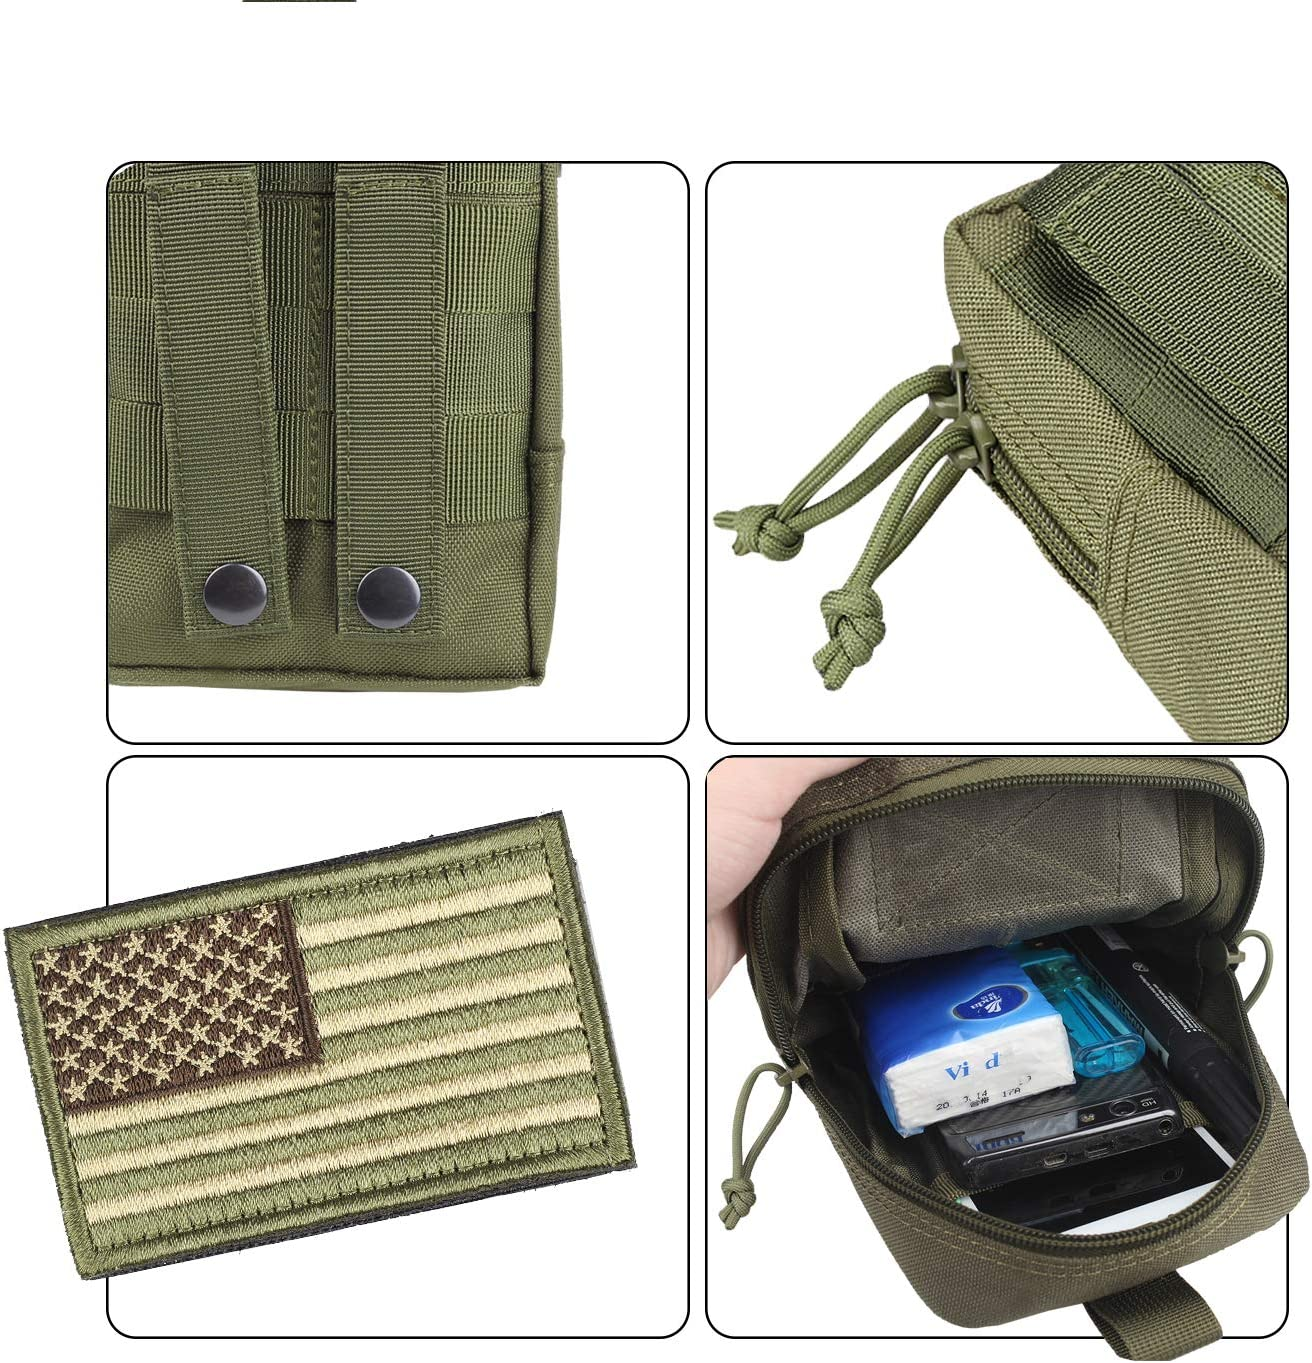 AMYIPO MOLLE Pouch Multi-Purpose Compact Tactical Waist Bags Small Utility Pouch (Green) : Sports & Outdoors